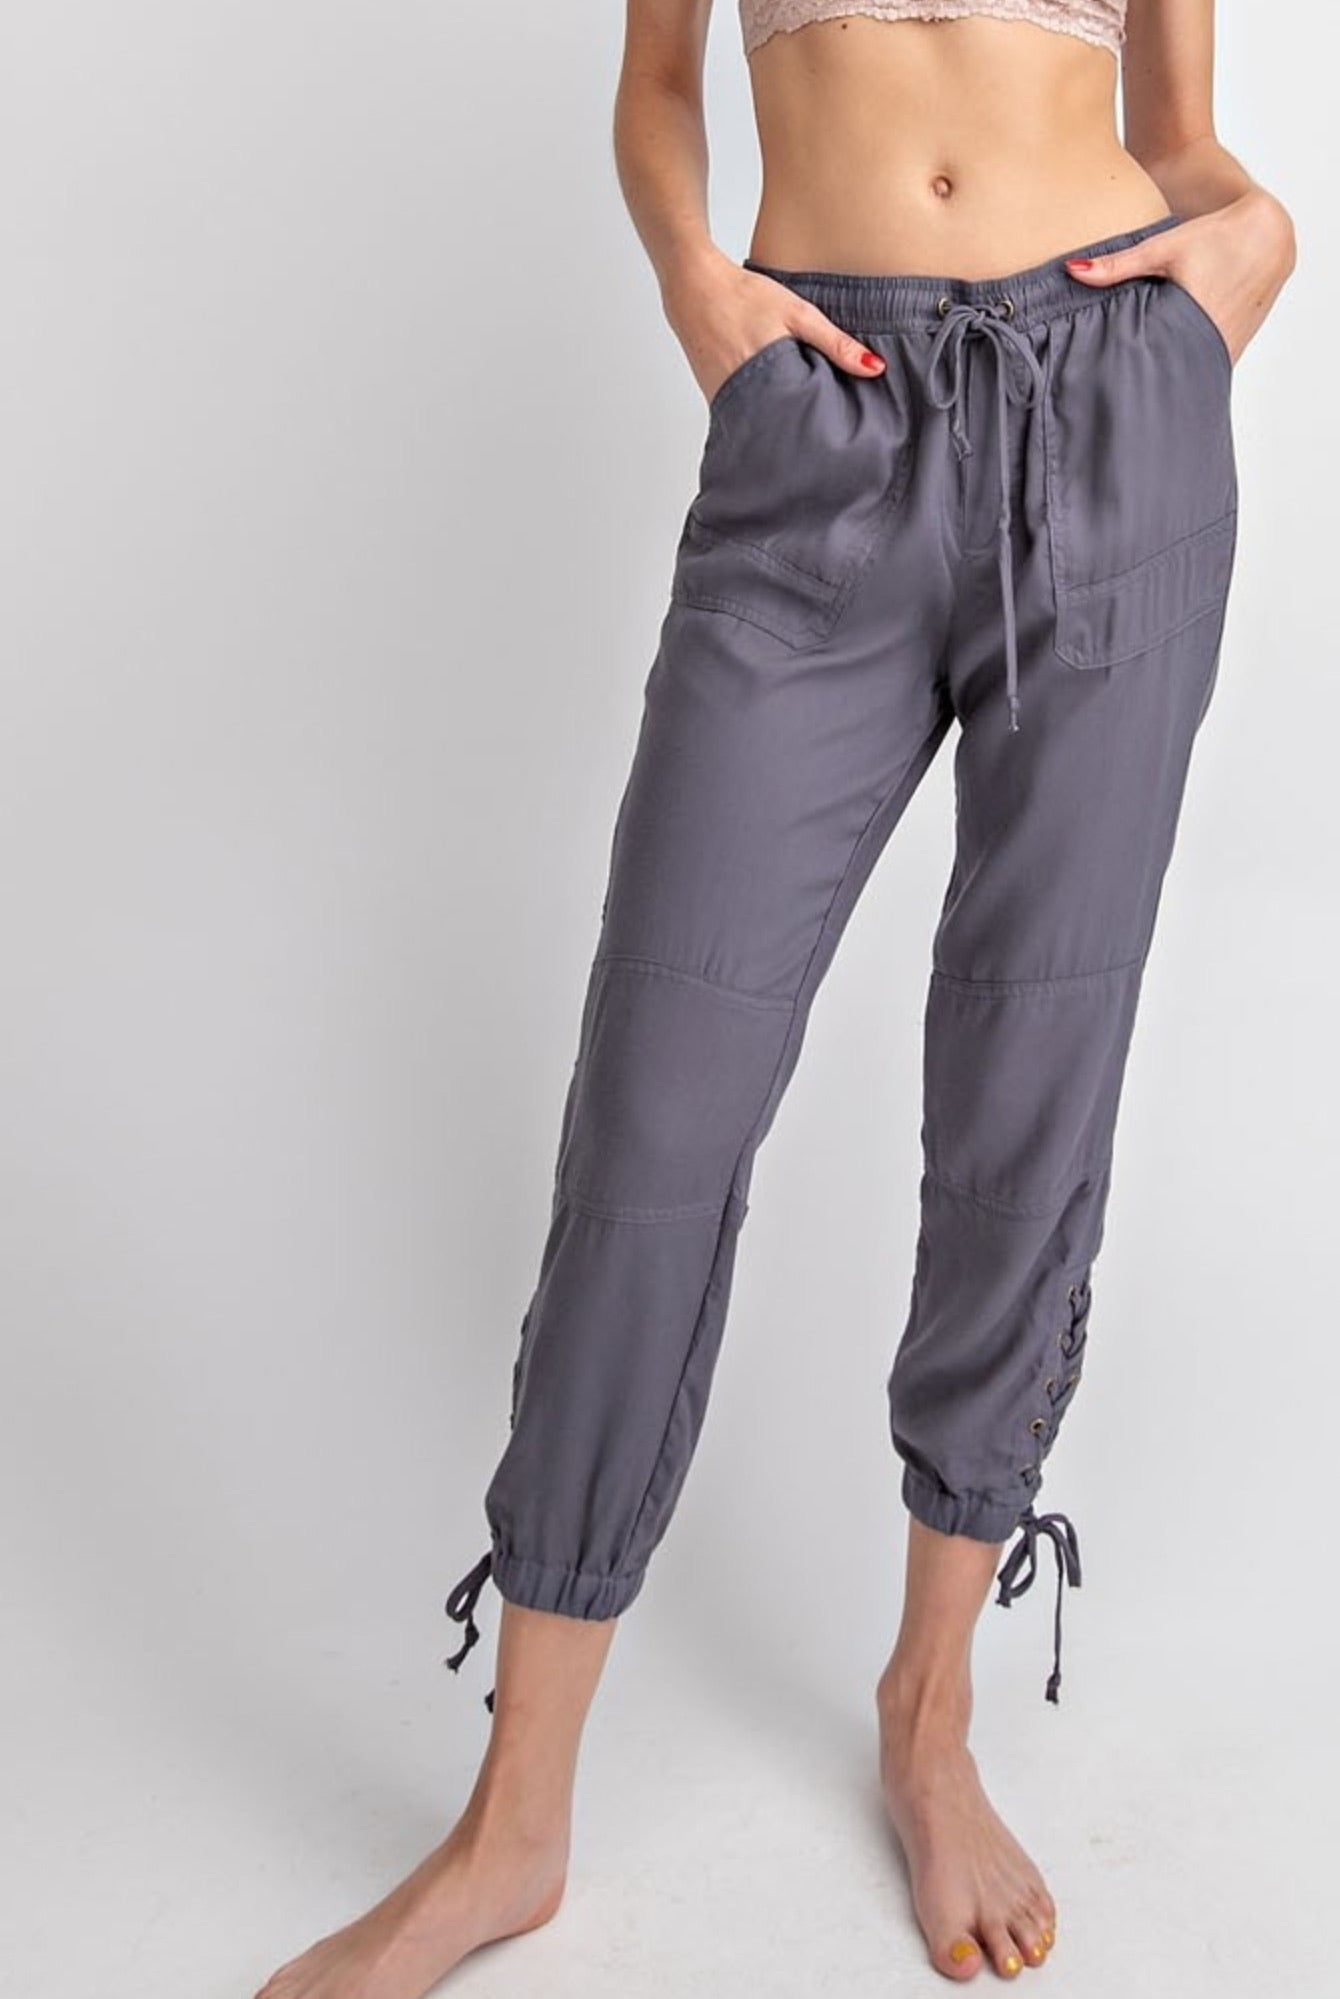 Slate Comfy Lace-Up Side Twill Jogger - My Sister's Porch